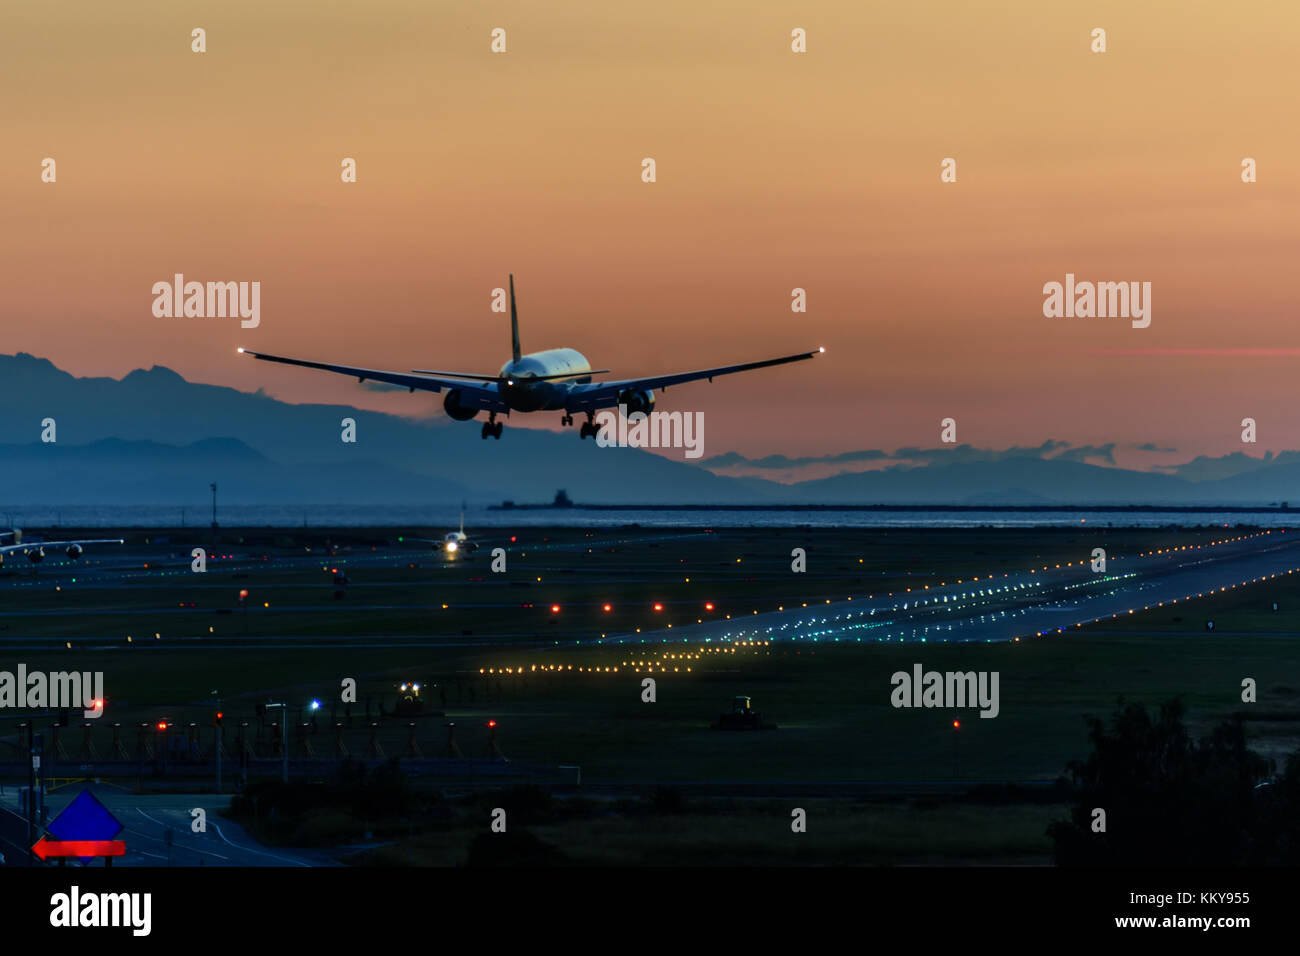 A beautiful landing of an airplane on the runway in a modern airport - Stock Image